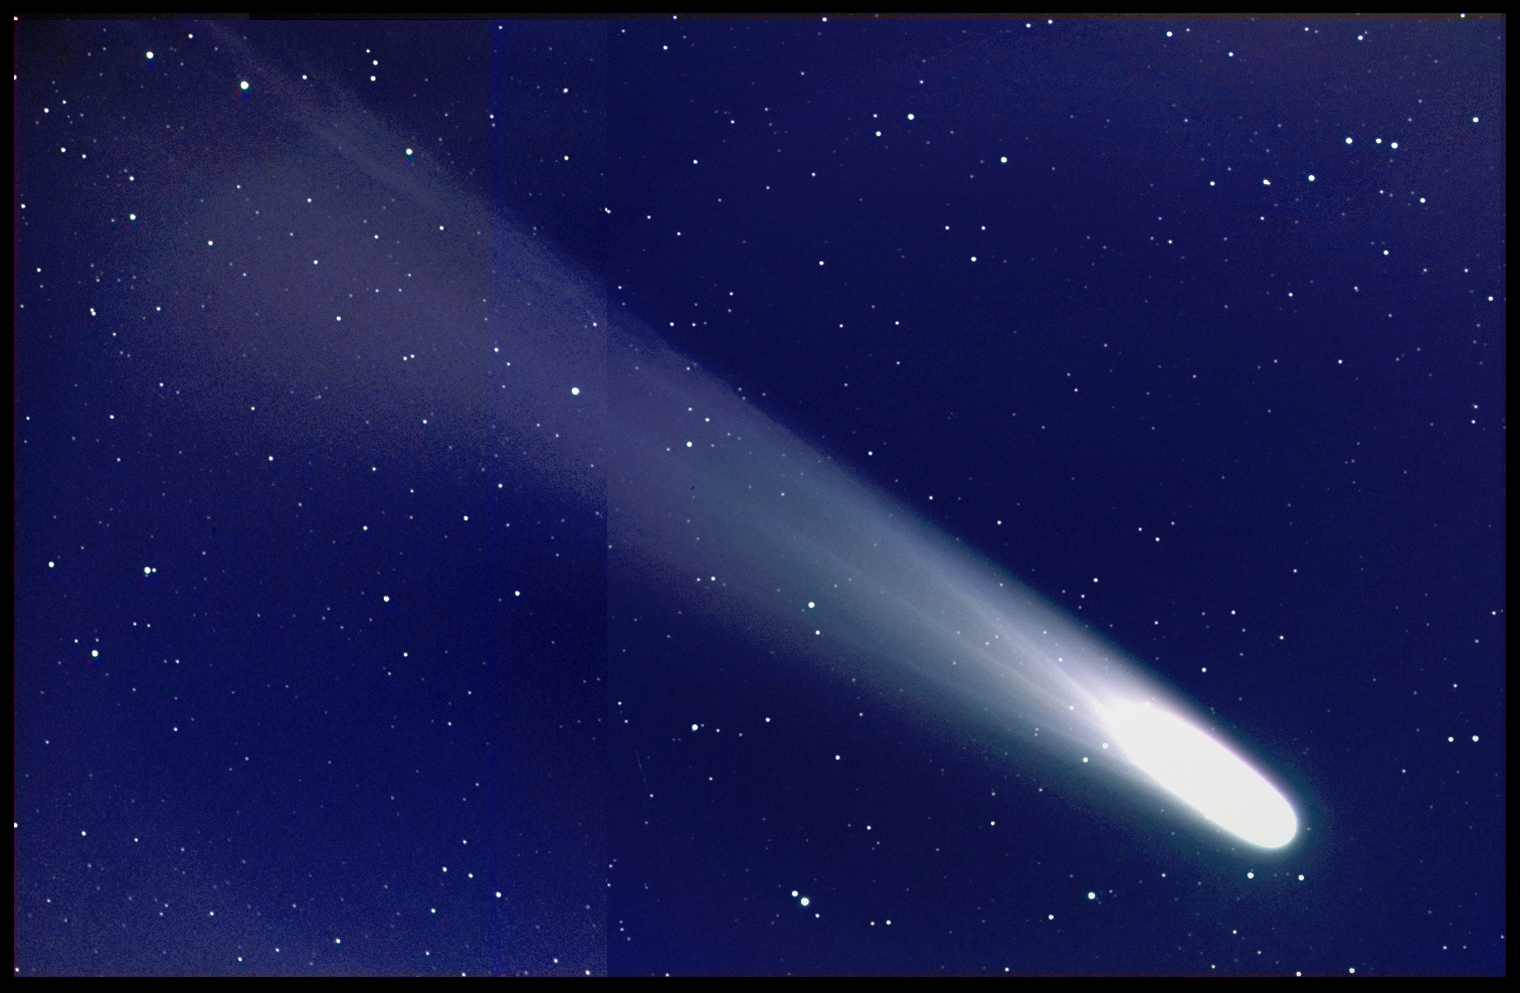 Animated Comet Free Download Wallpaper